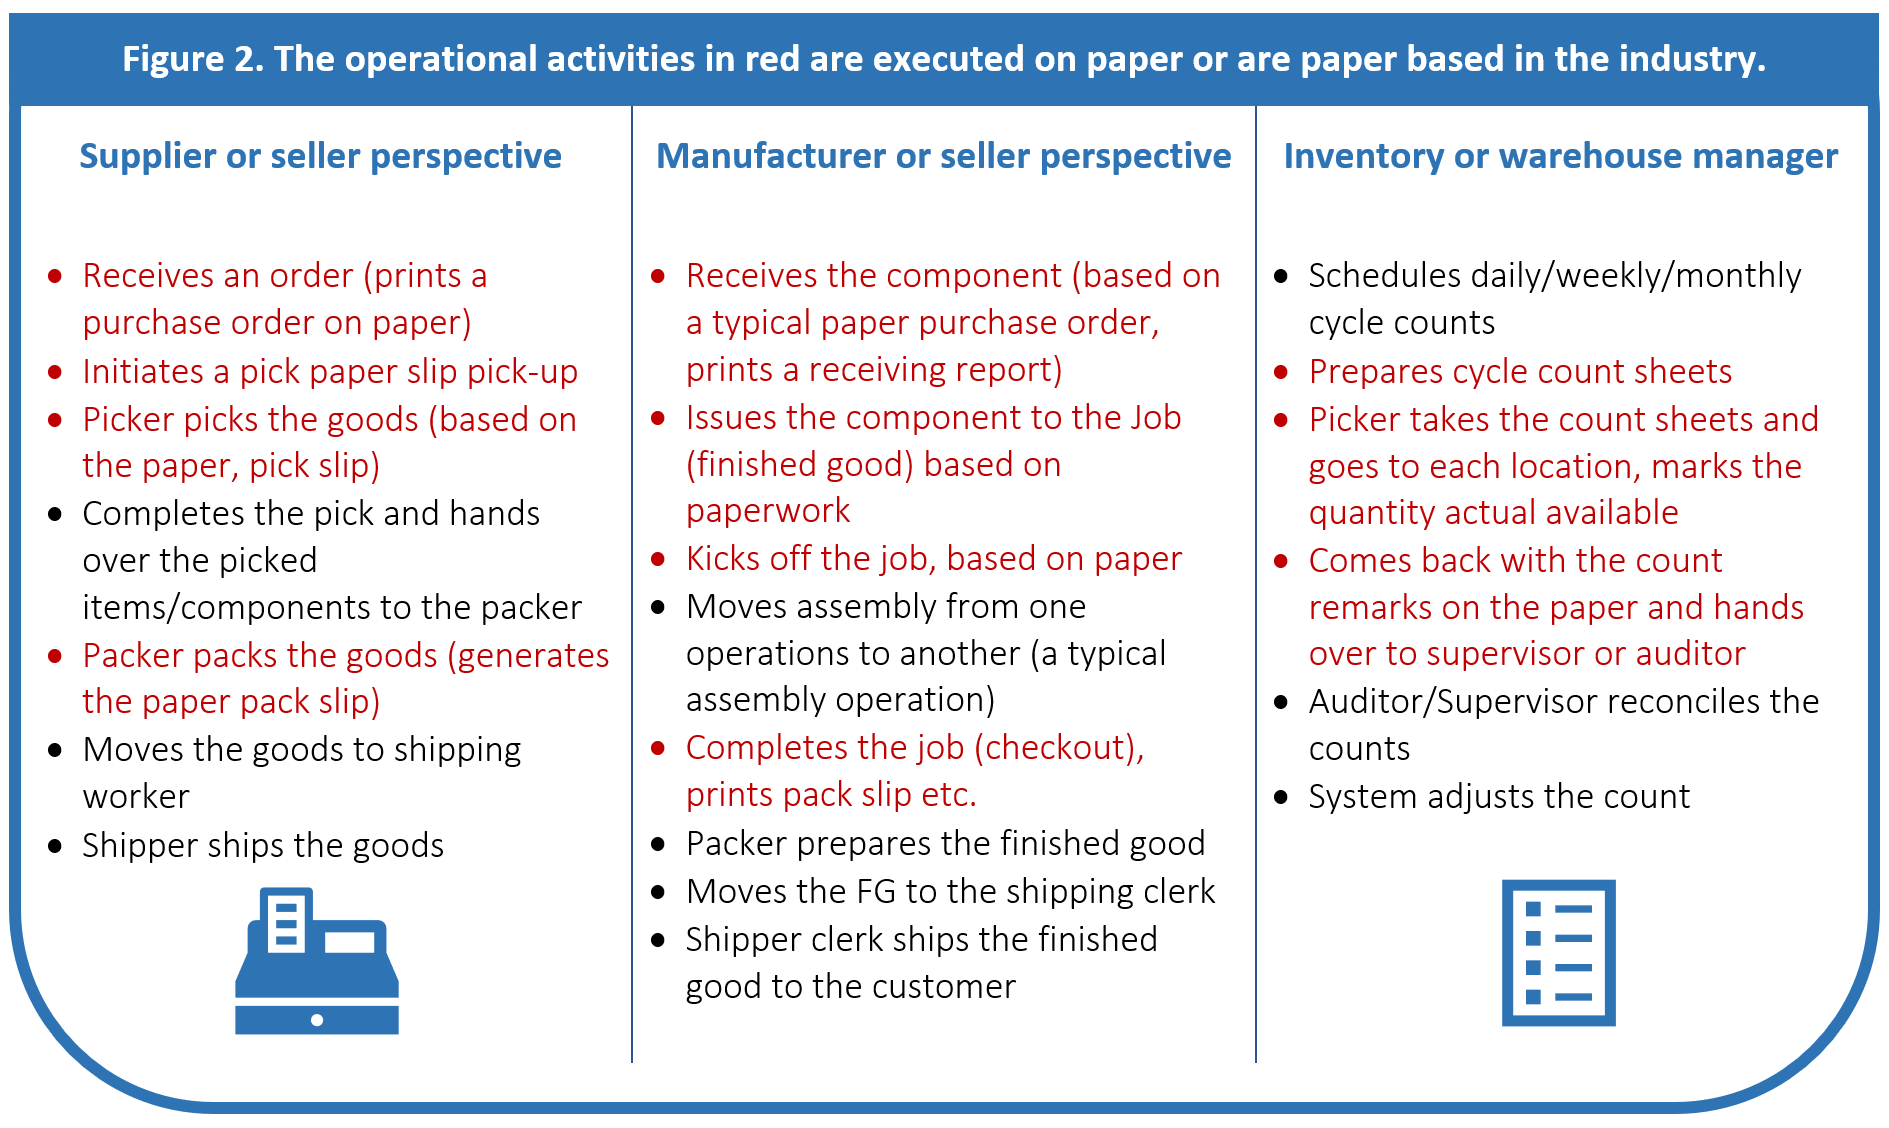 How to achieve six-figure benefits from digitizing paper